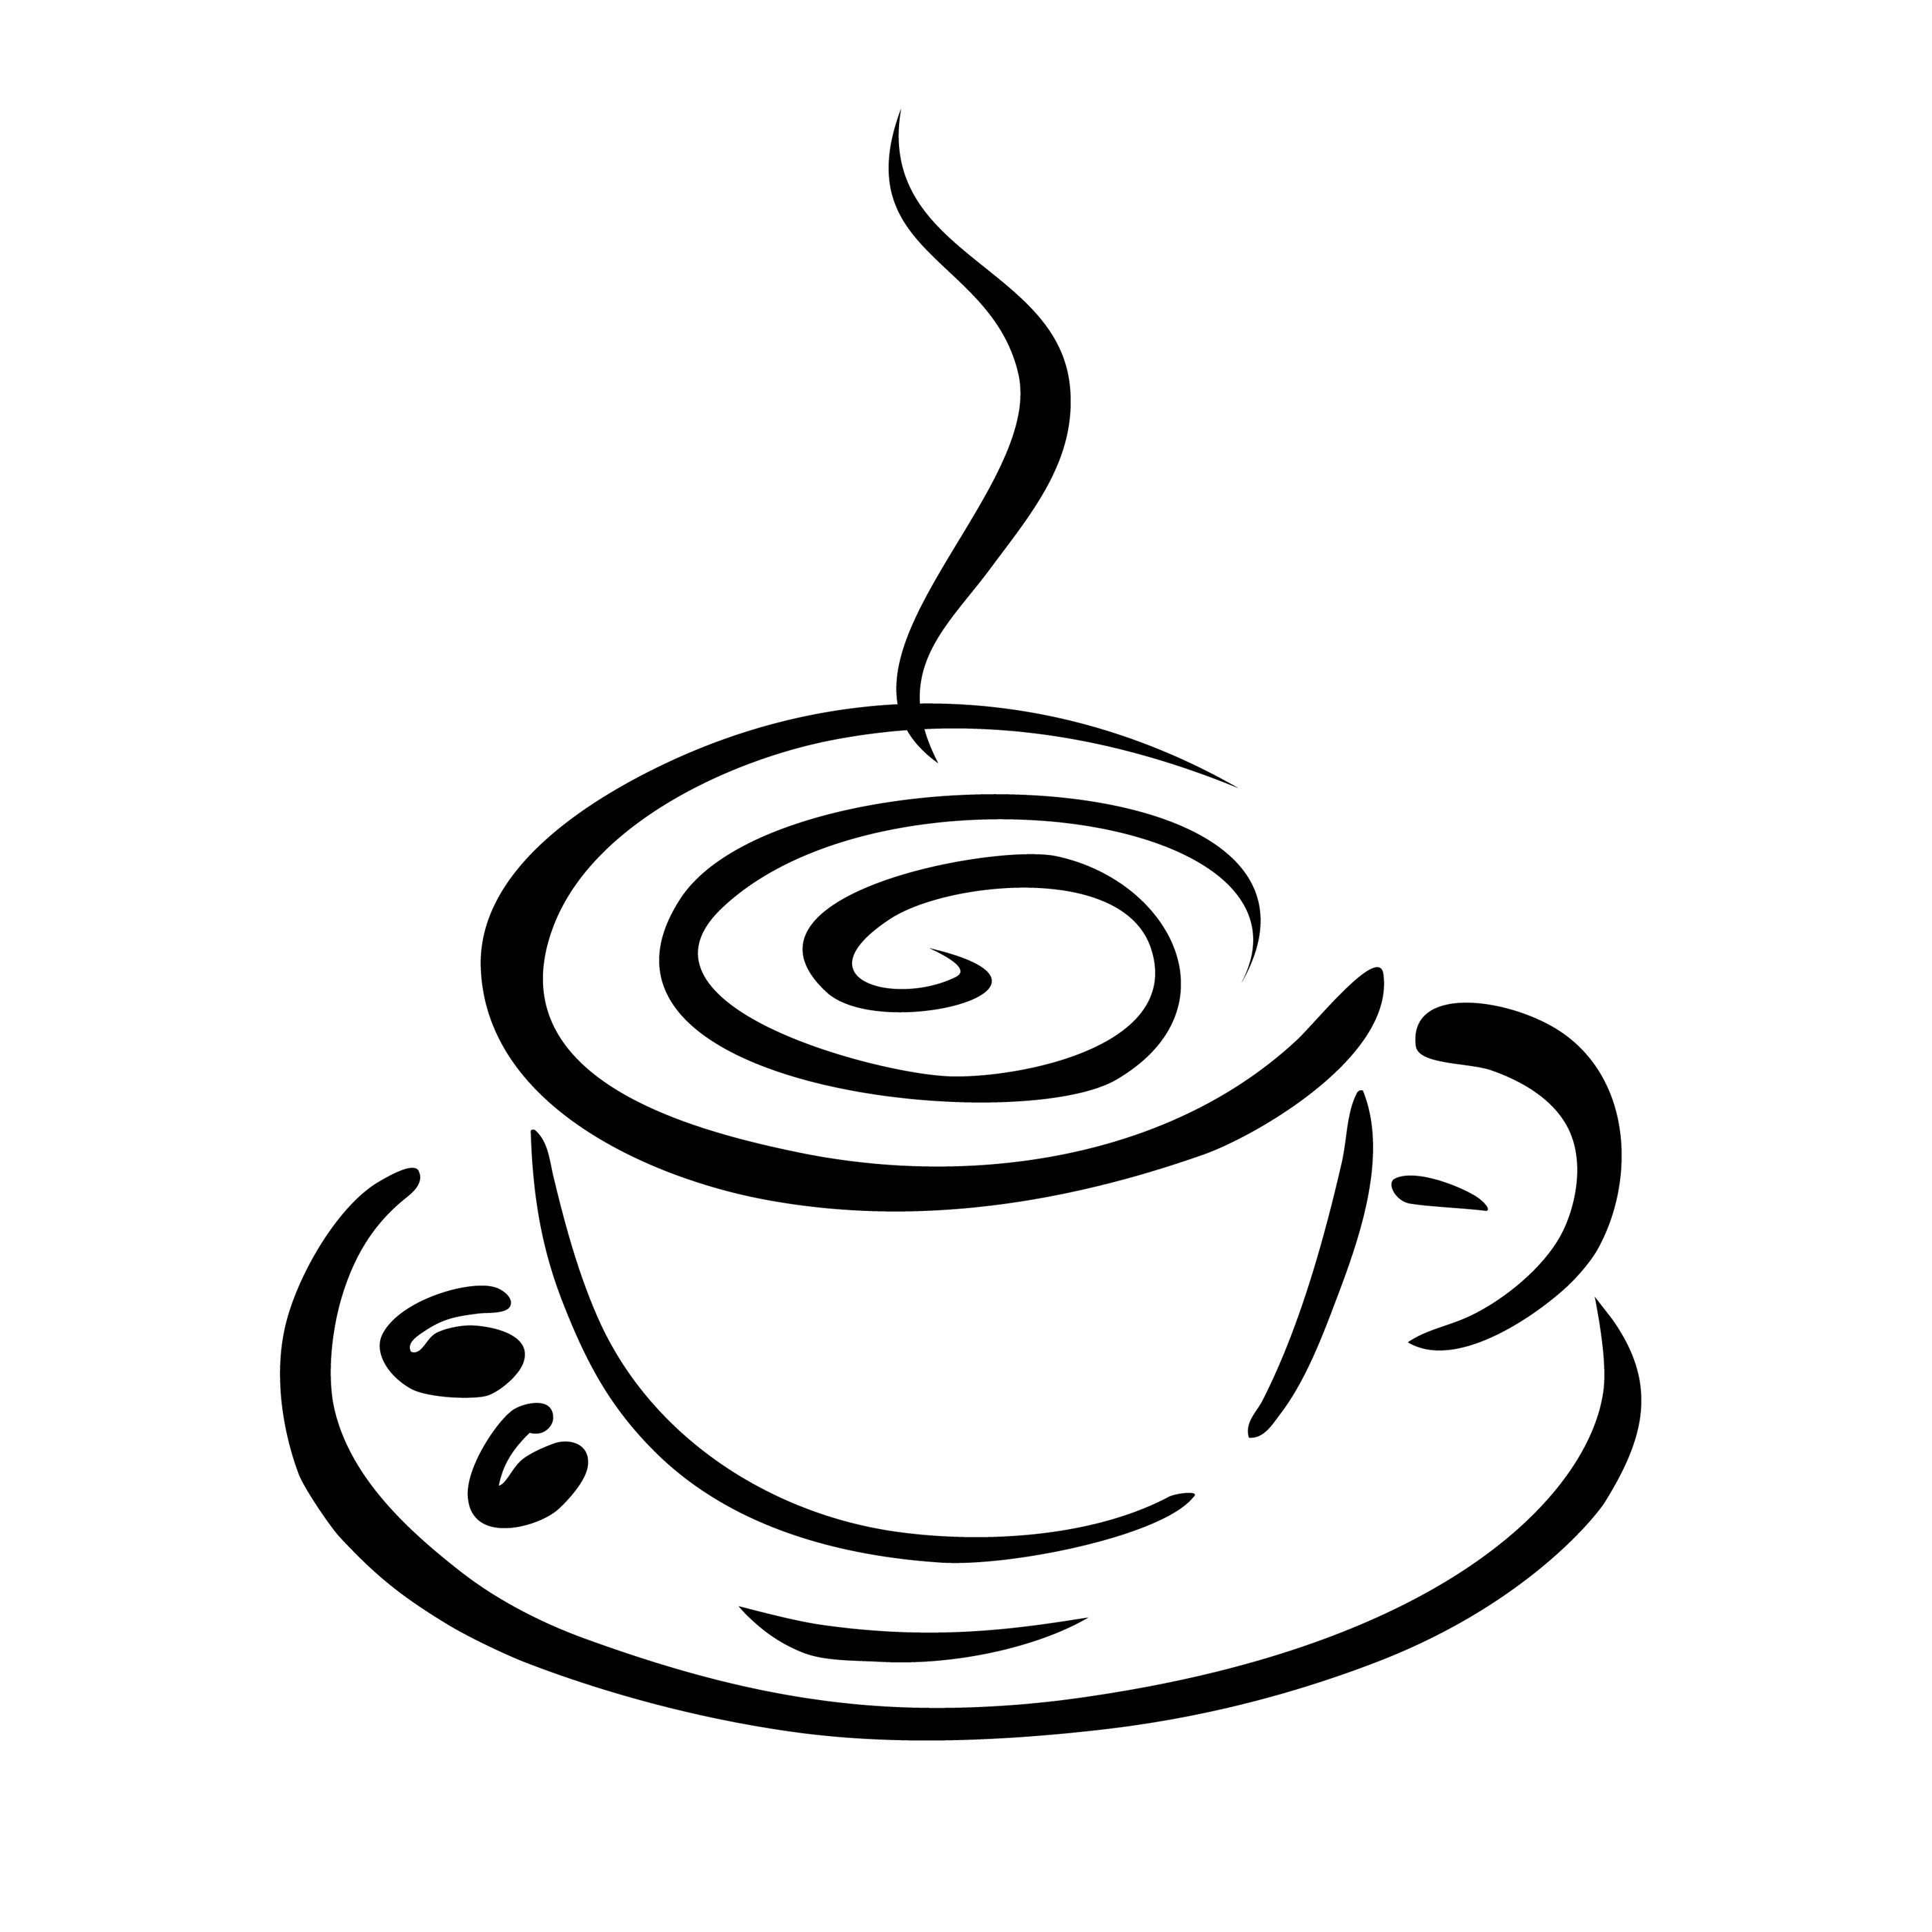 Coffee Cup Black And White Clipart - Clipart Kid | Clipart ...